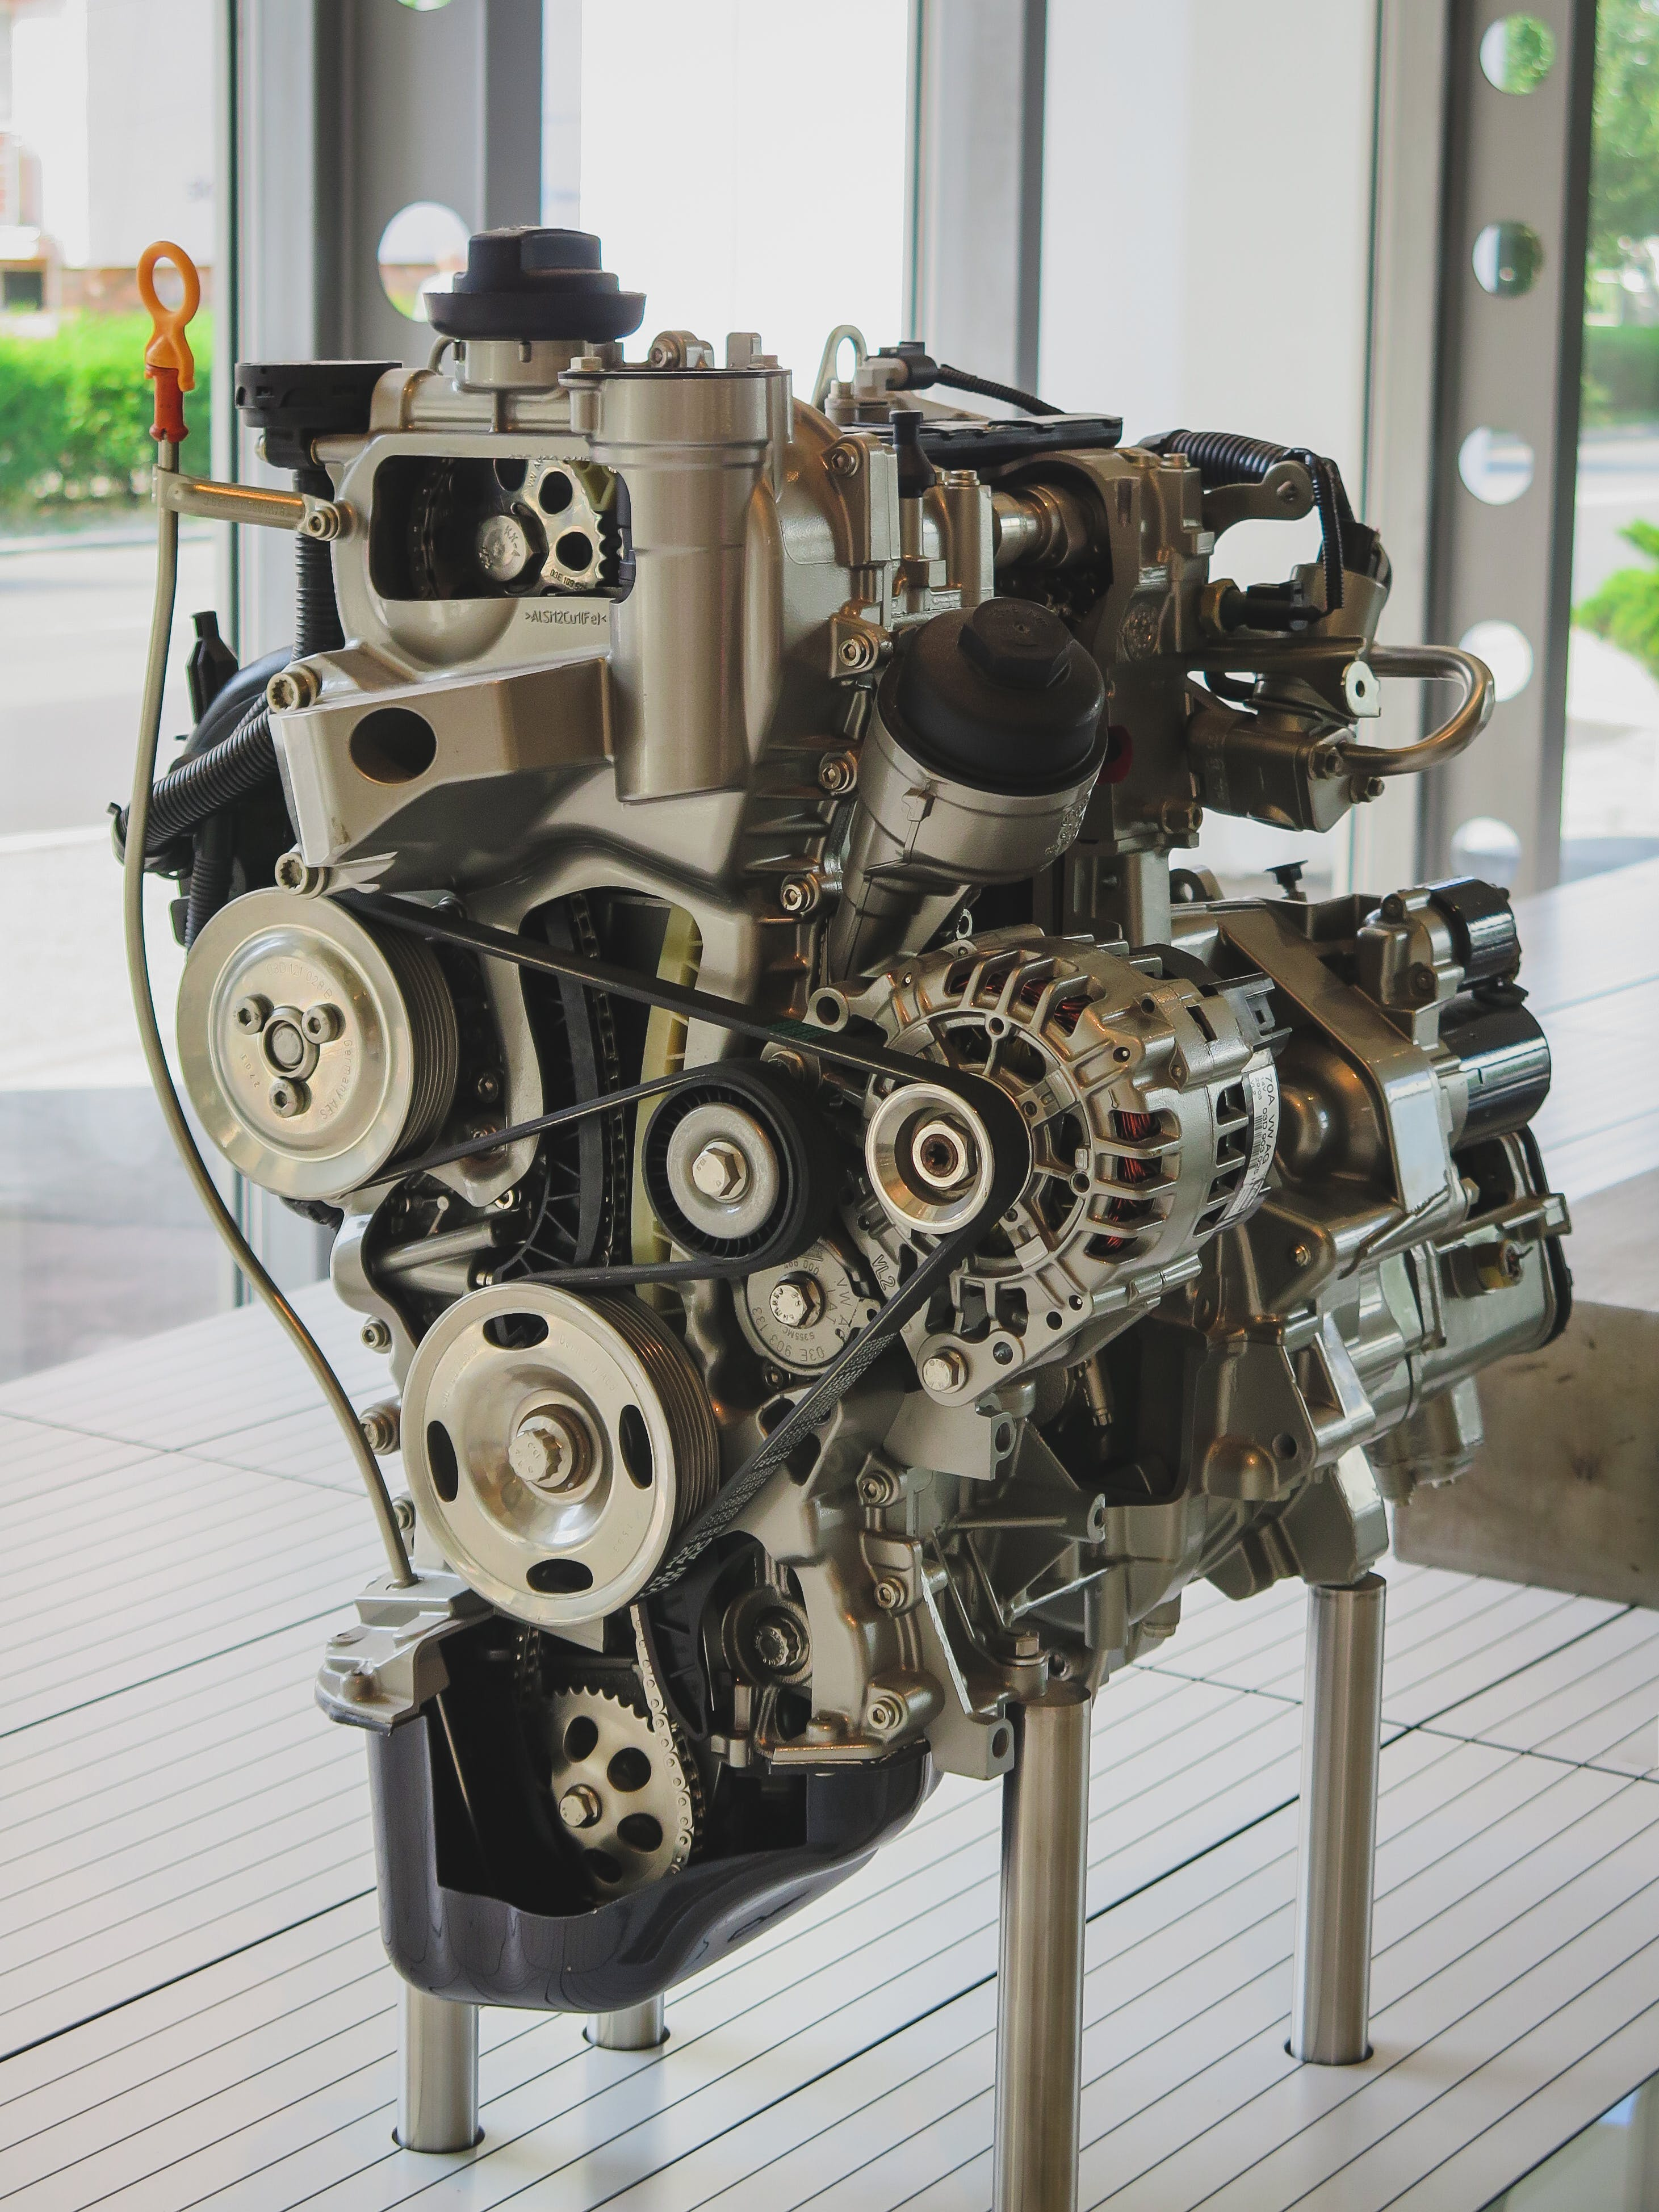 Free stock photo of car engine, cut in half, engine, Fabia